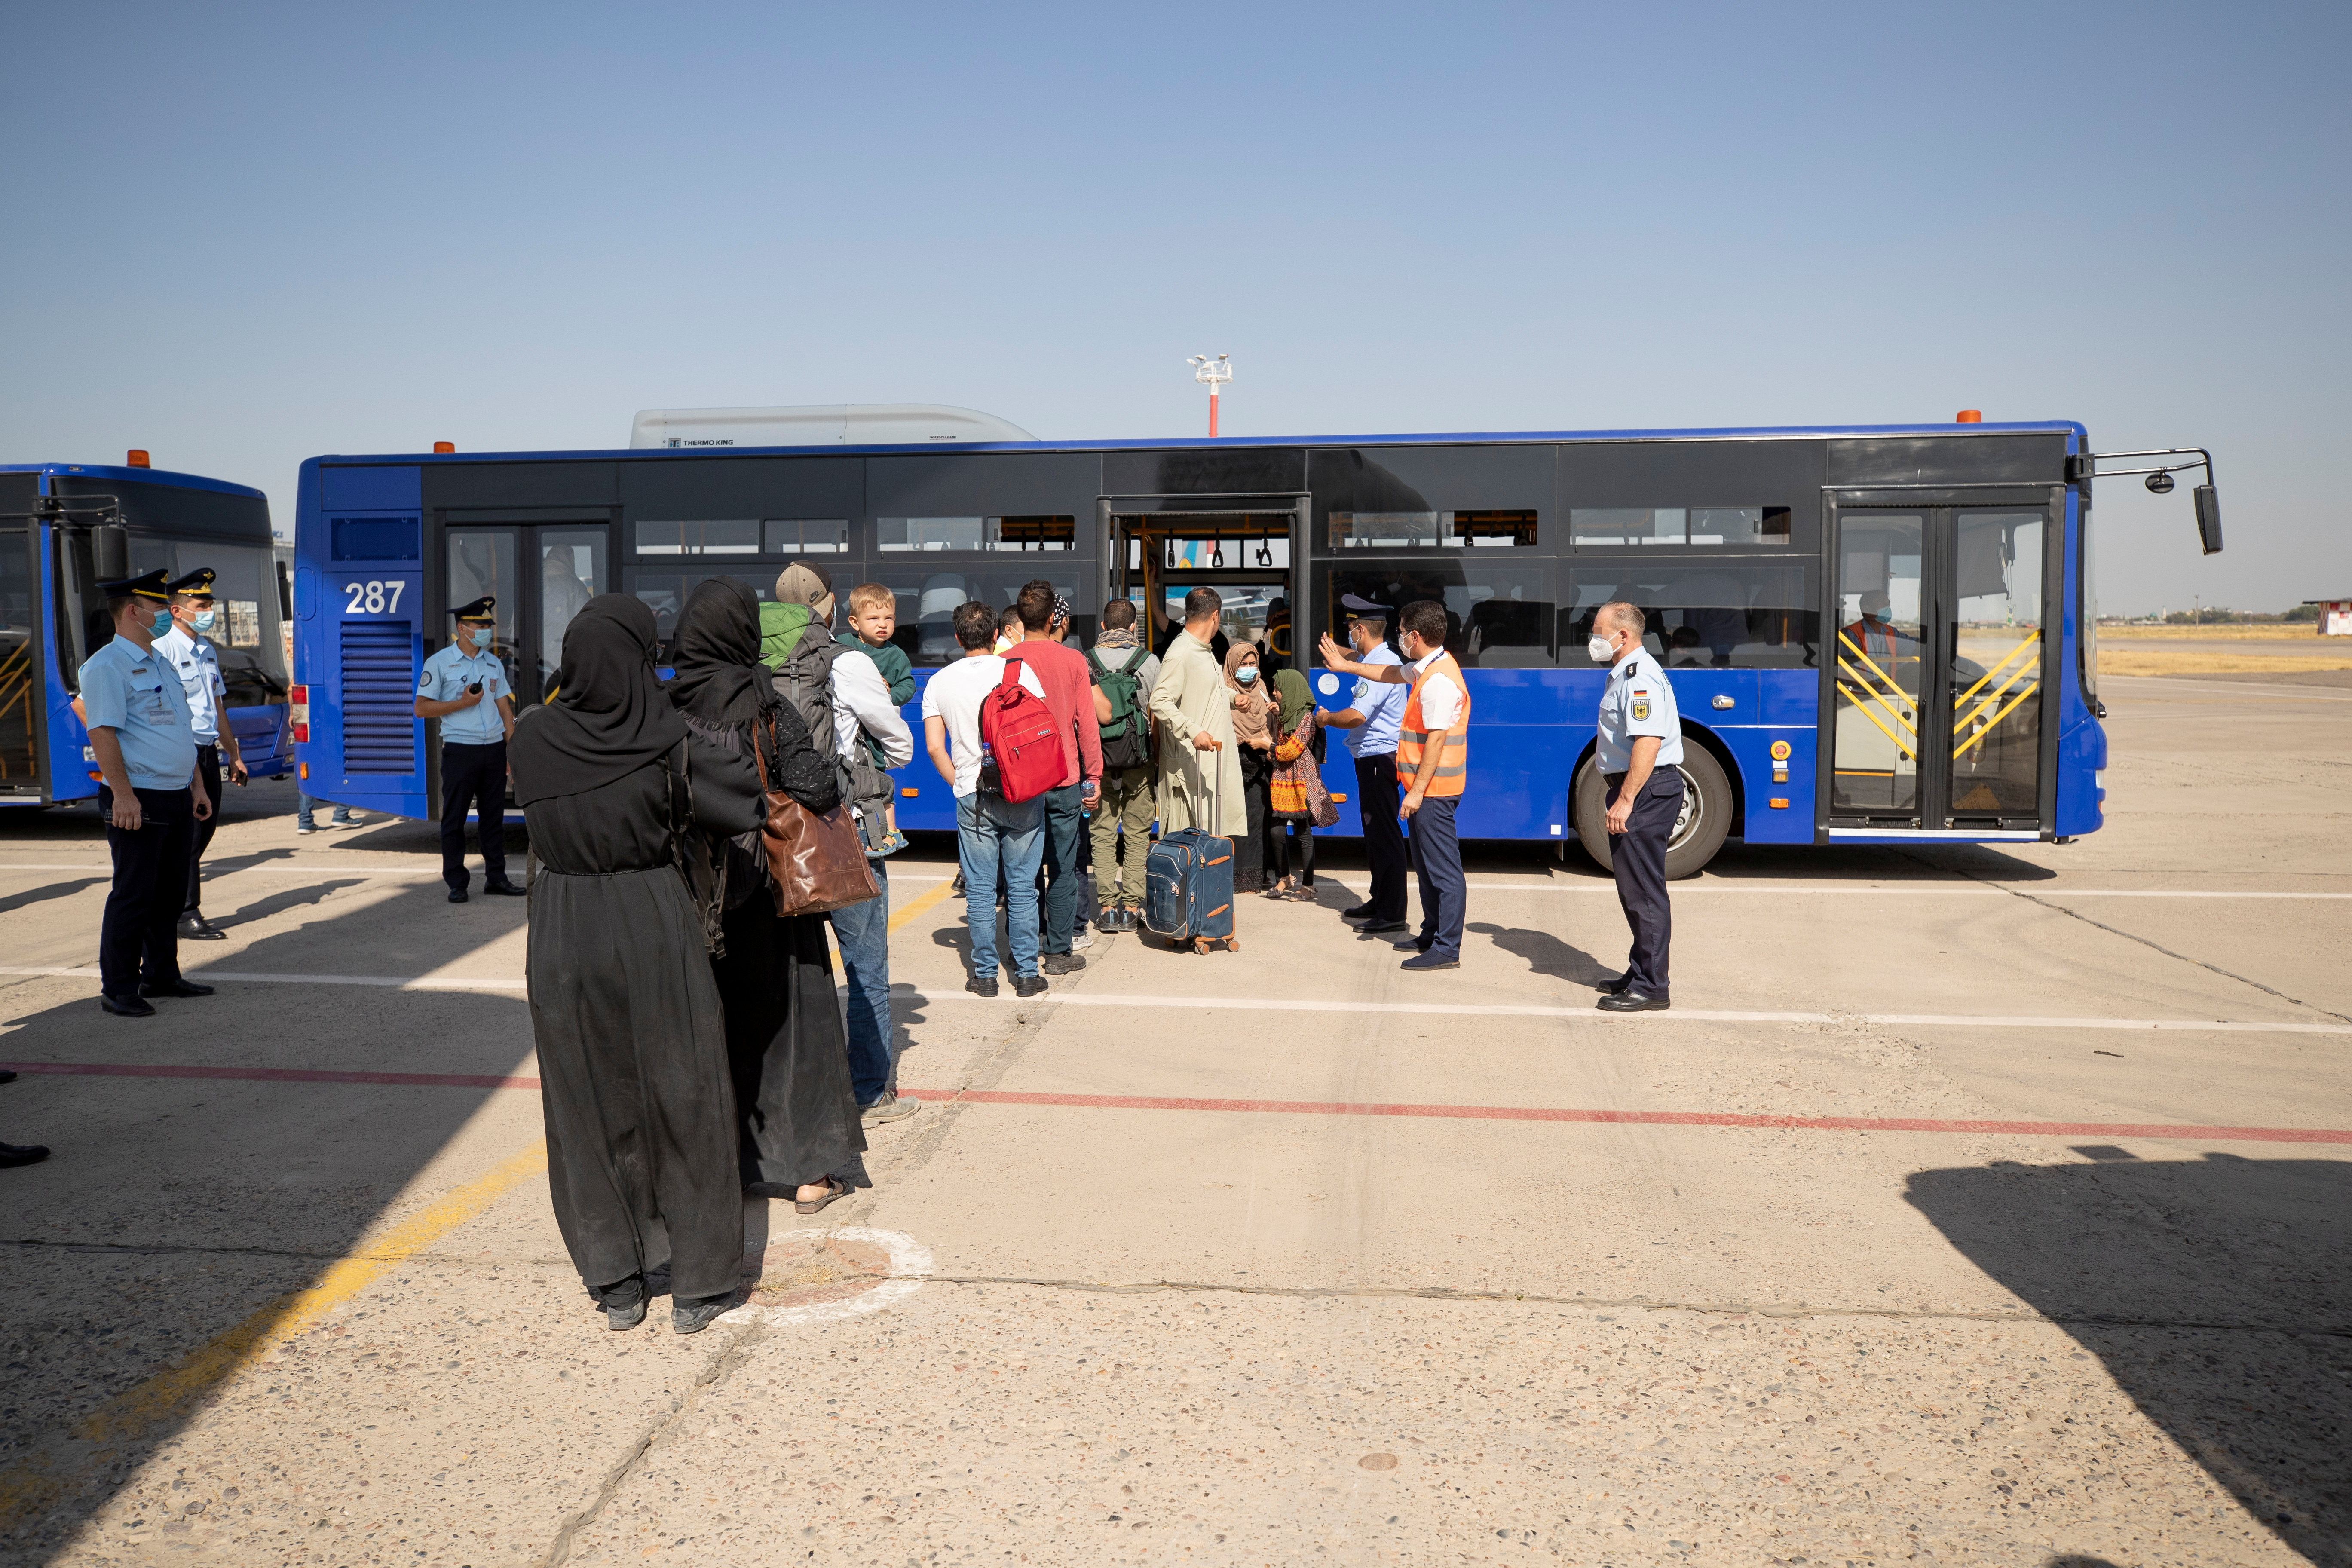 A handout photo obtained from the Bundeswehr Twitter account @Bw_Einsatz on August 18, 2021 shows evacuees from Afghanistan as they board a bus after their arrival in an Airbus A400 transport aircraft of the German Air Force Luftwaffe in Tashkent, Uzbekistan. Marc Tessensohn/Twitter @Bw_Einsatz/Handout via REUTERS    ATTENTION EDITORS - THIS IMAGE HAS BEEN SUPPLIED BY A THIRD PARTY.   NO RESALES. NO ARCHIVES   PARTS OF THE IMAGE HAVE BEEN PIXELATED AT SOURCE.